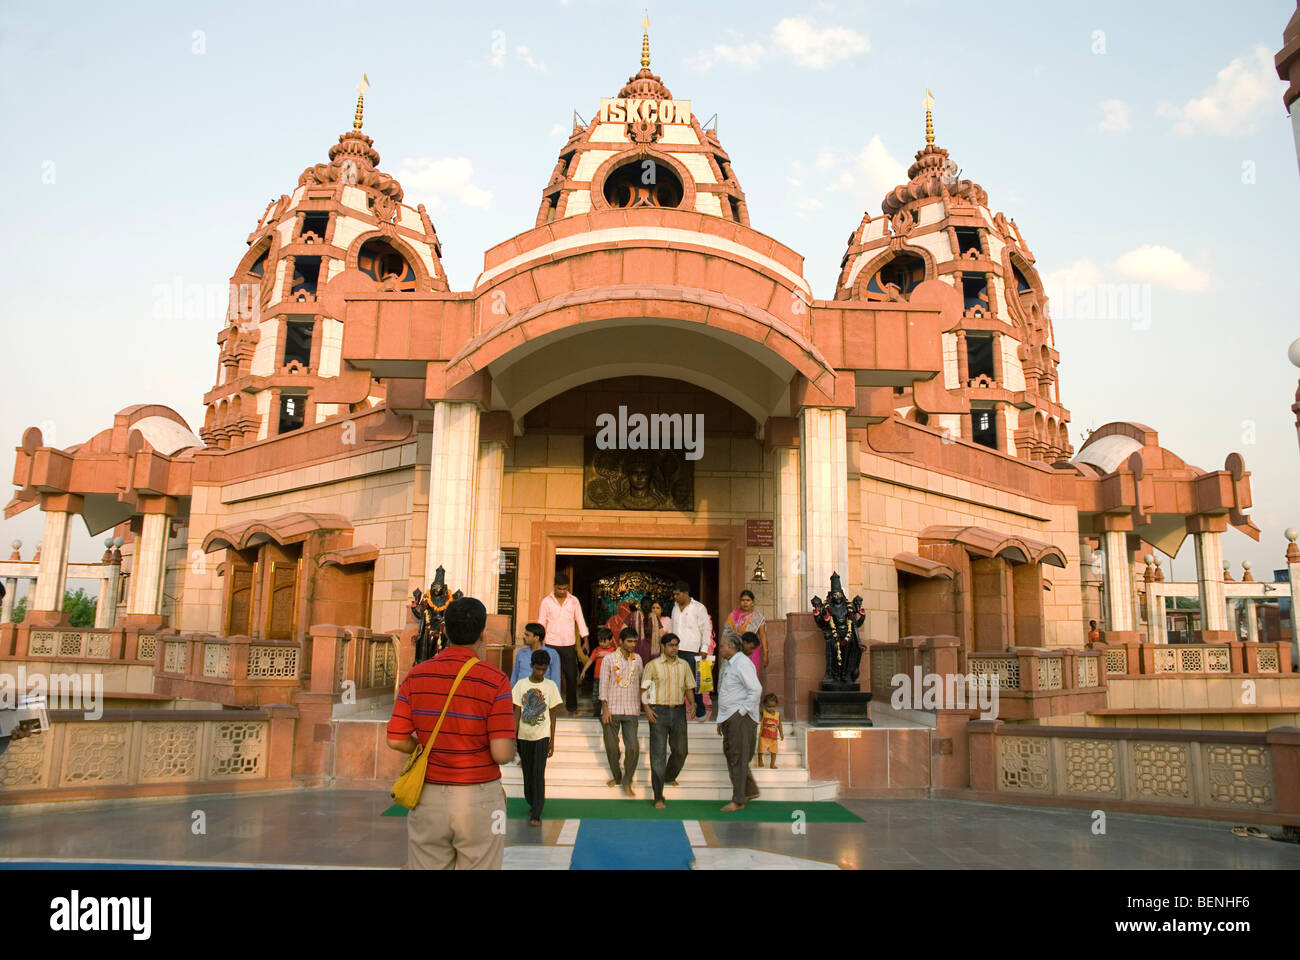 Iskcon Temple New Delhi India Stock Photo